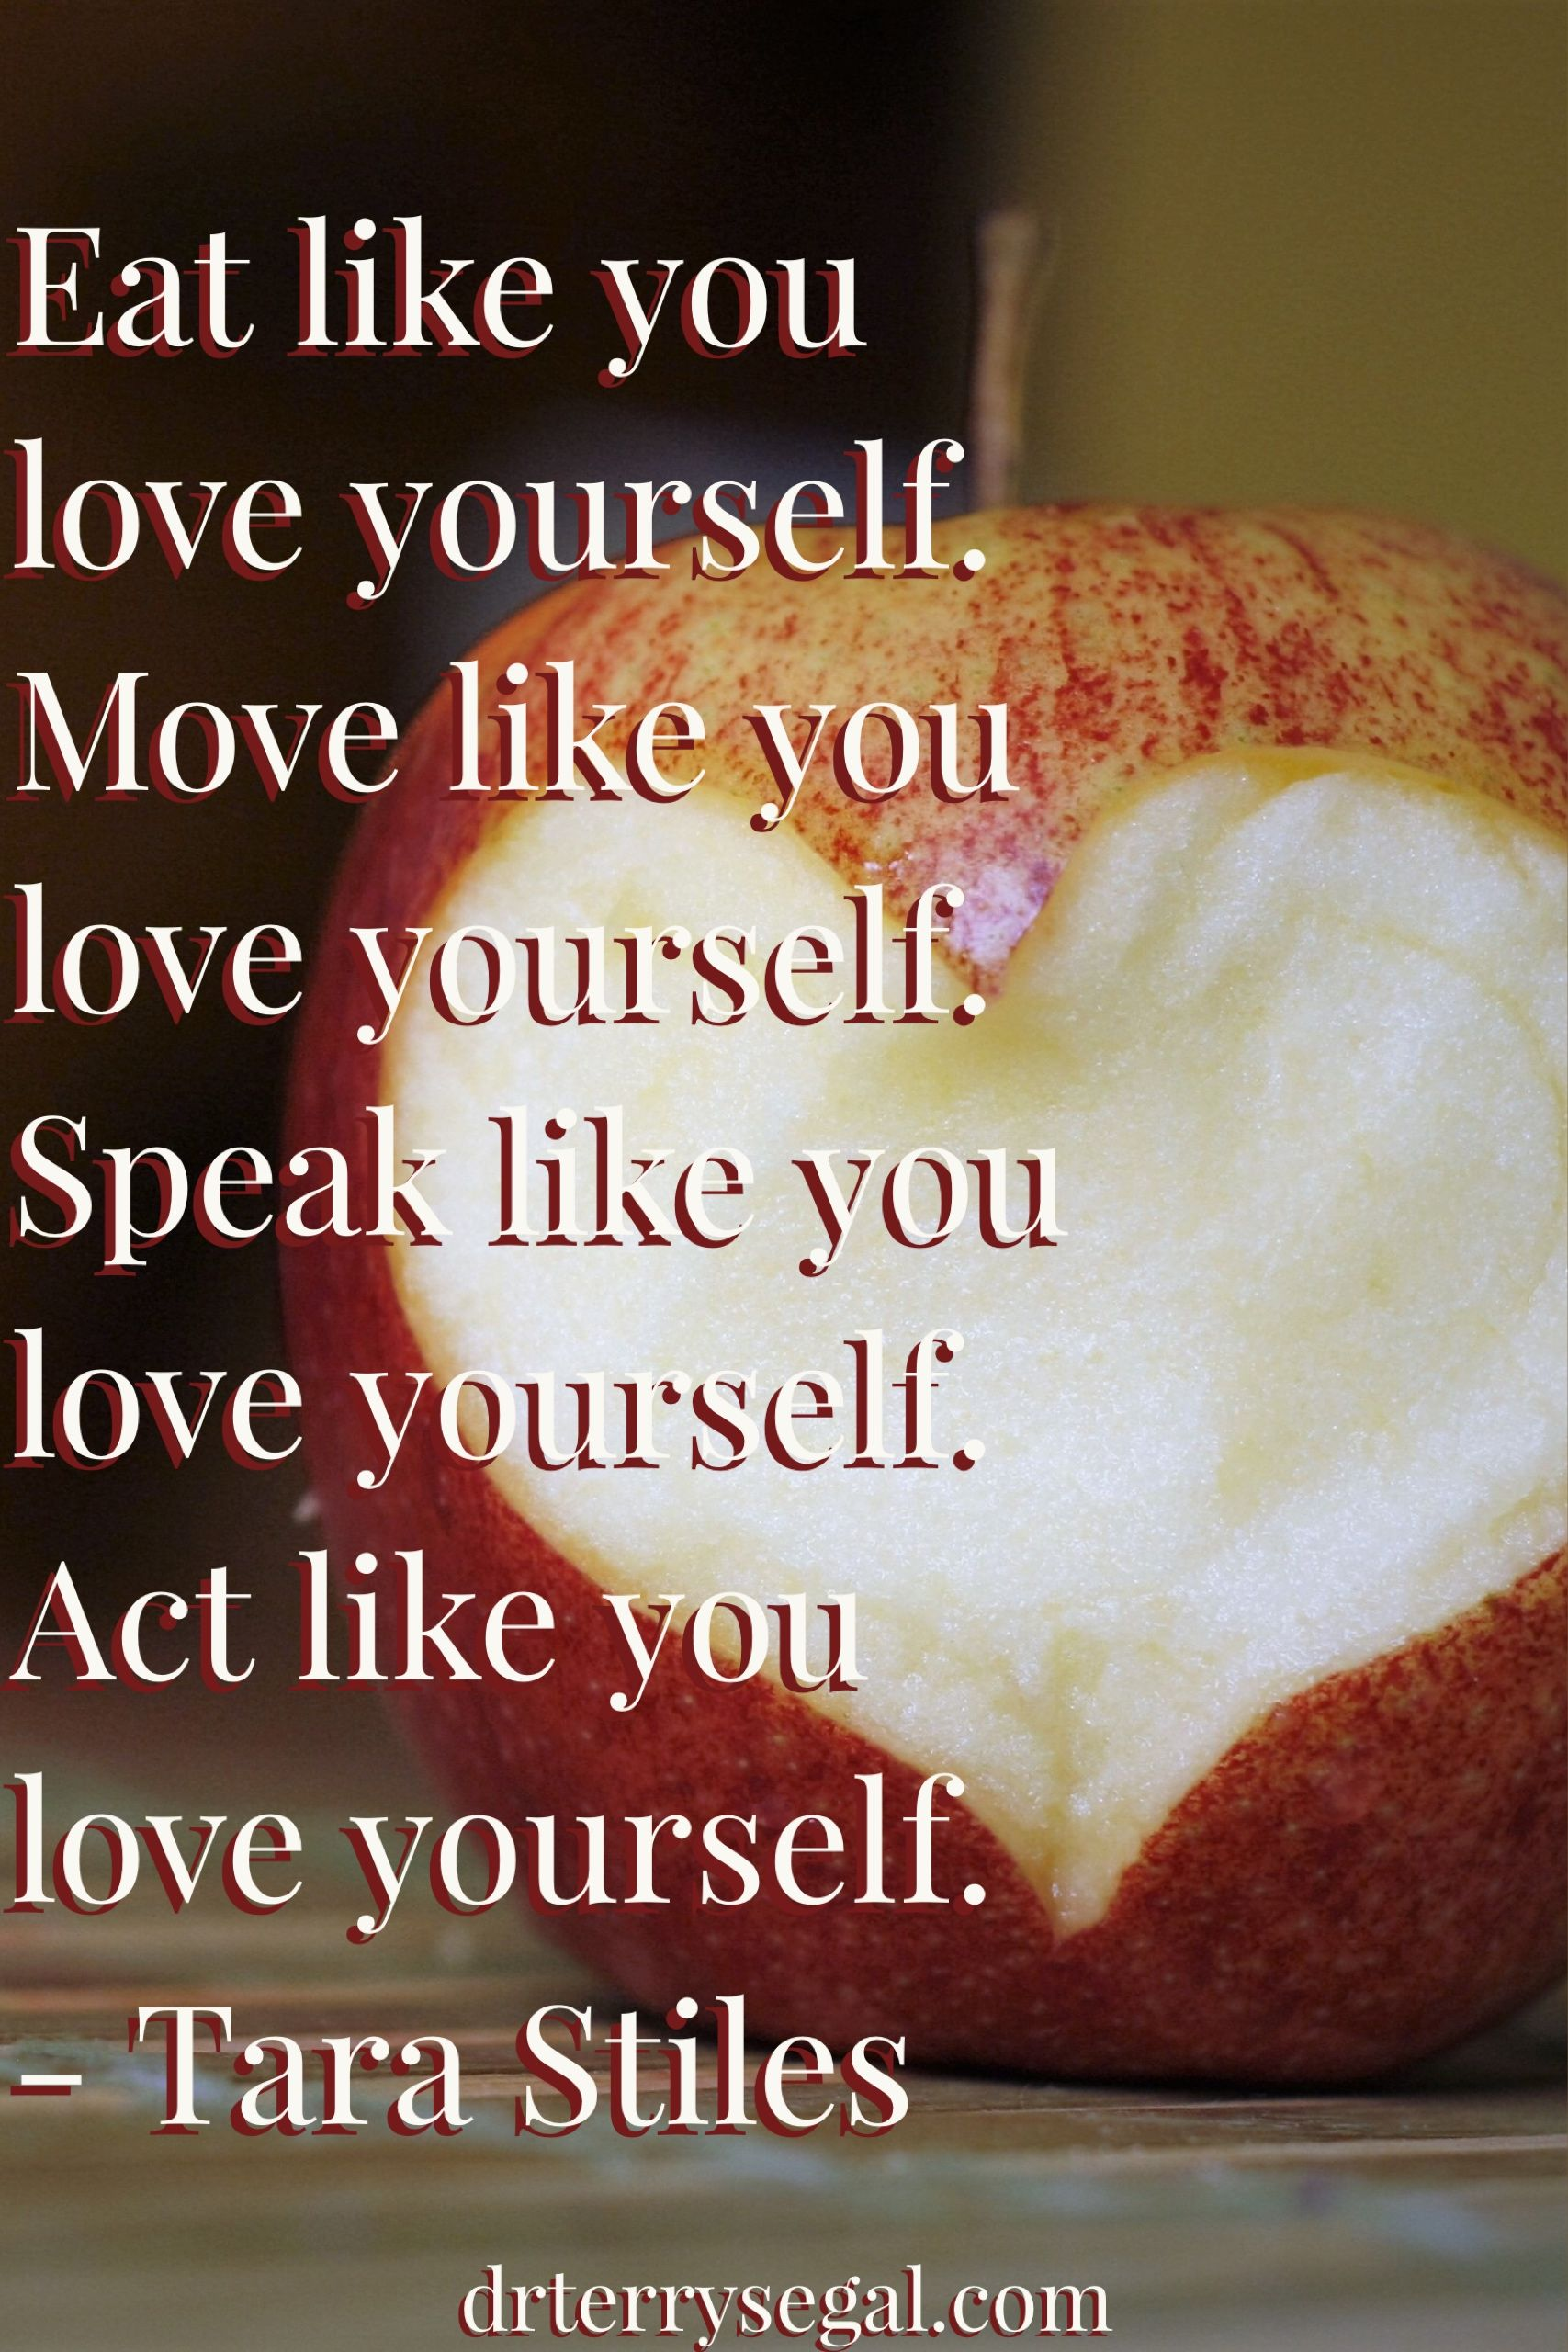 Retreat From Stress Eat Like You Love Yourself Move Like You Love